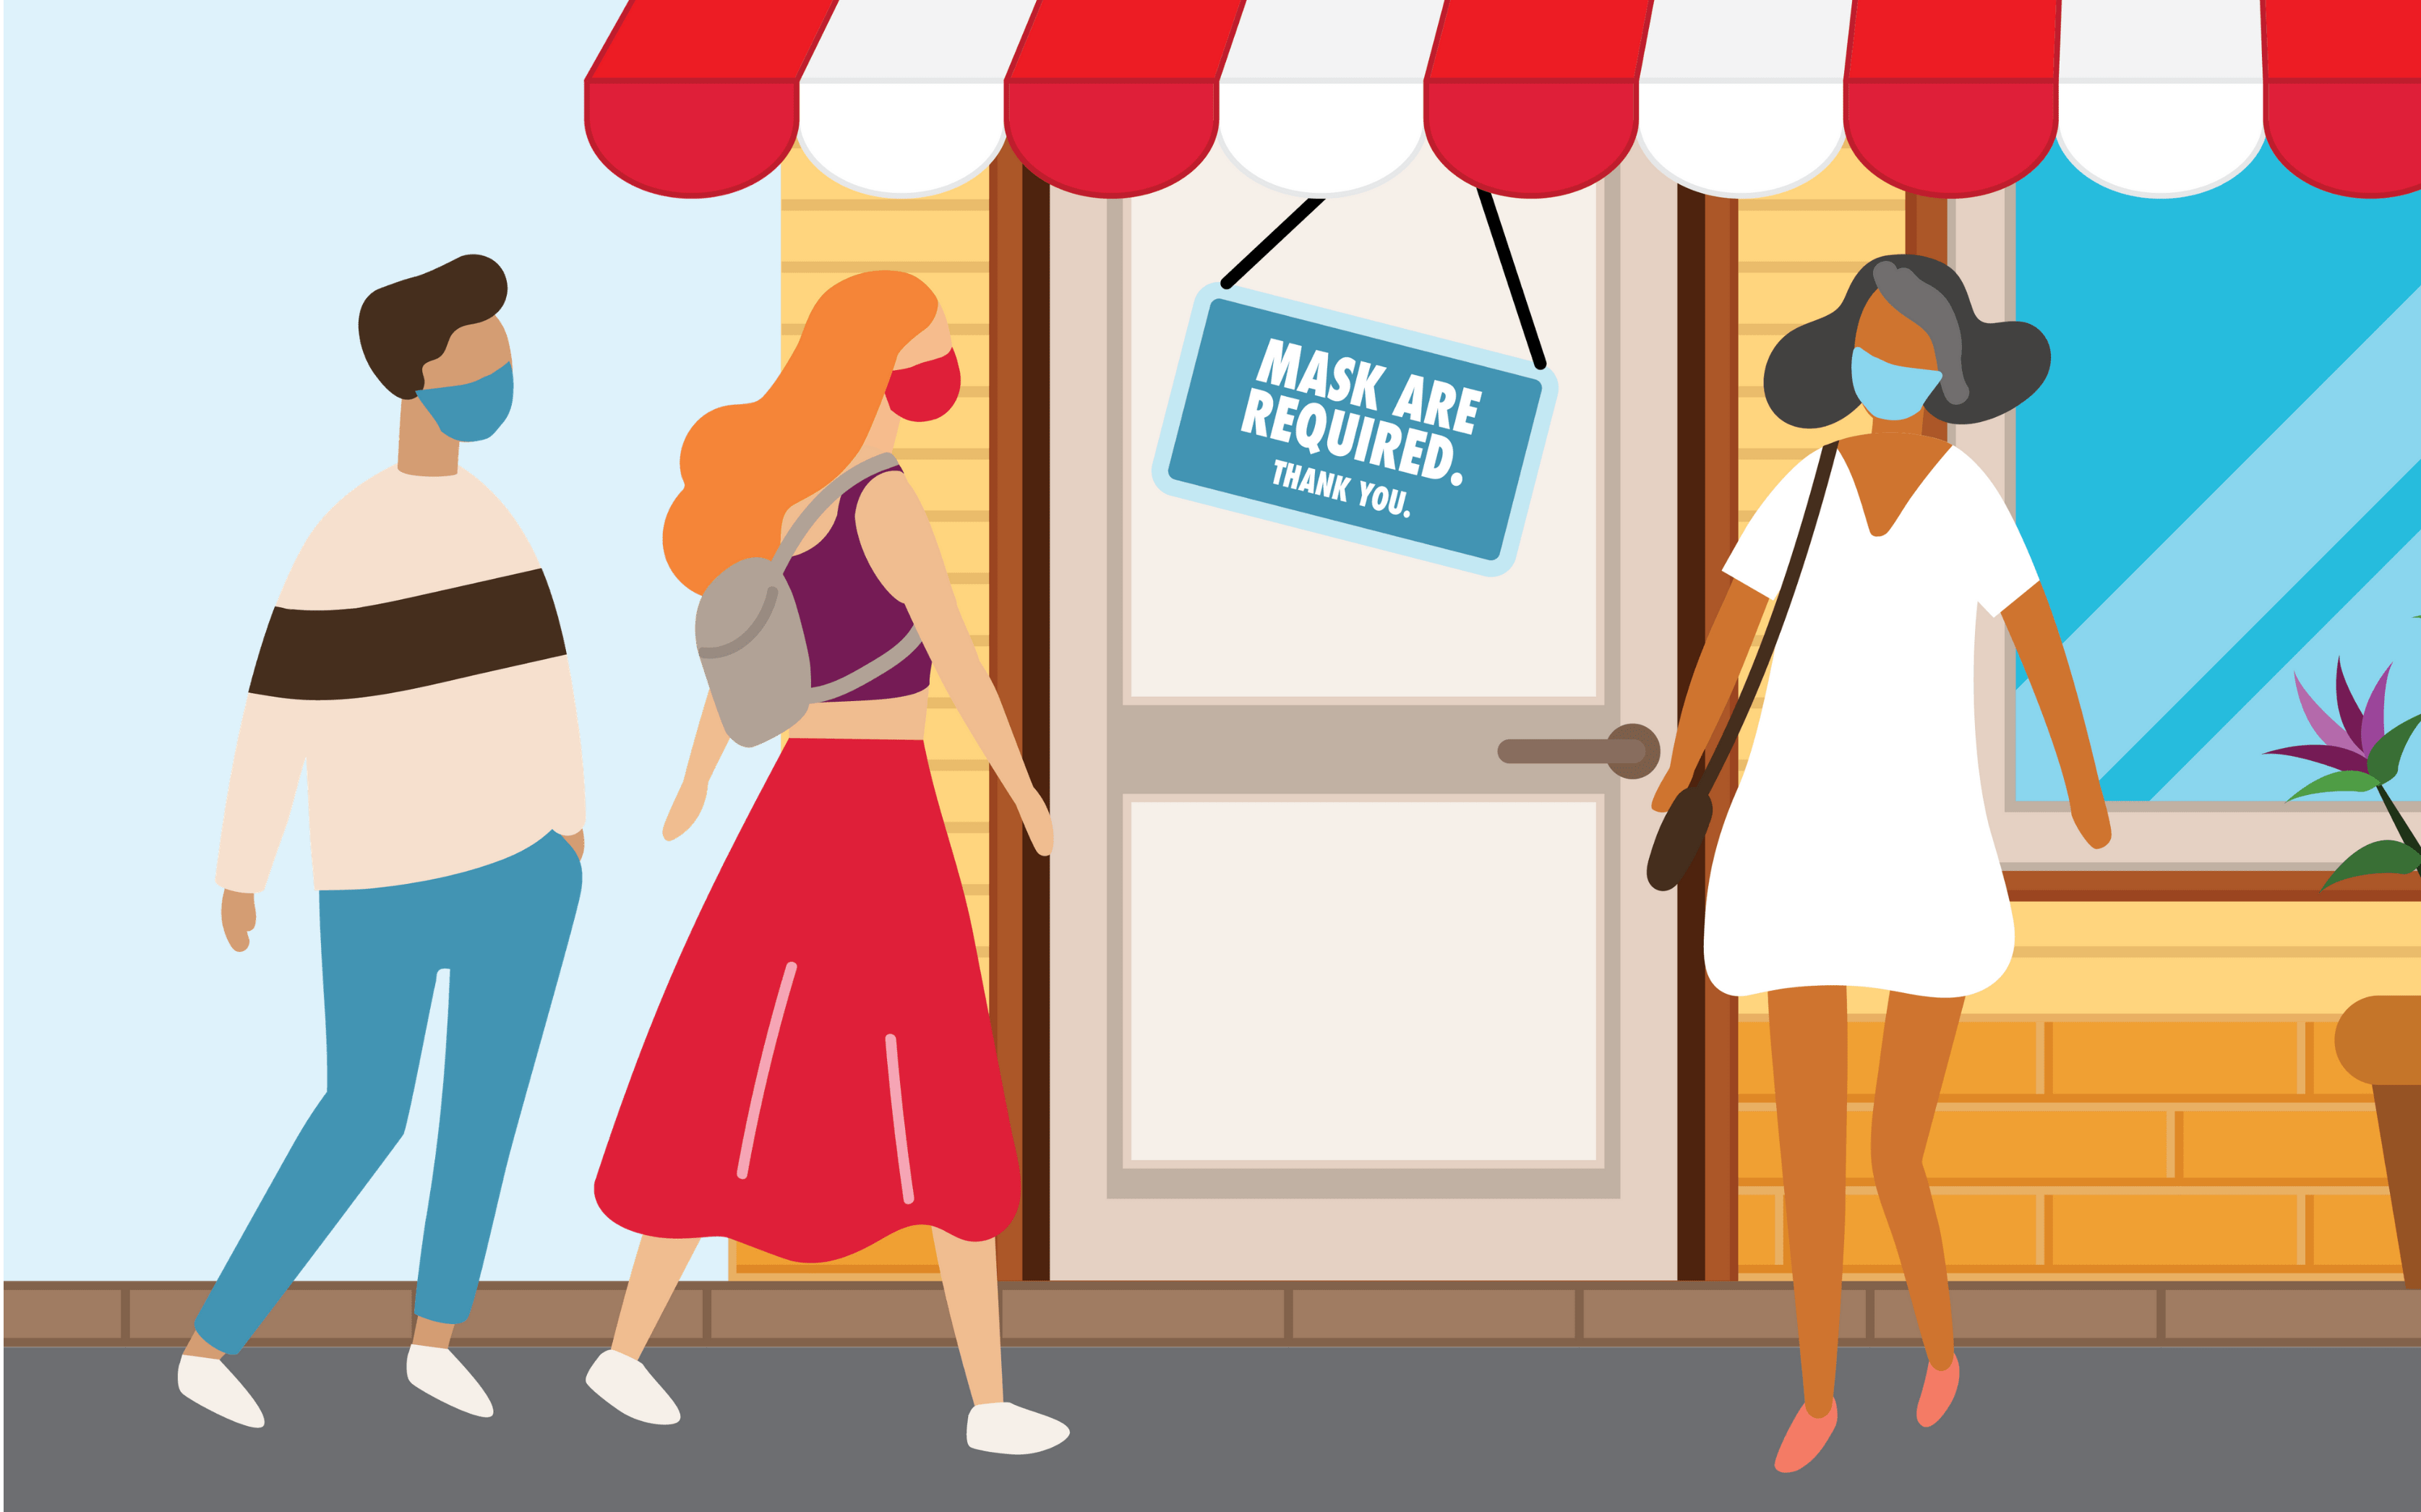 Illustrative figures walking into a store with masks on as the store requires it.